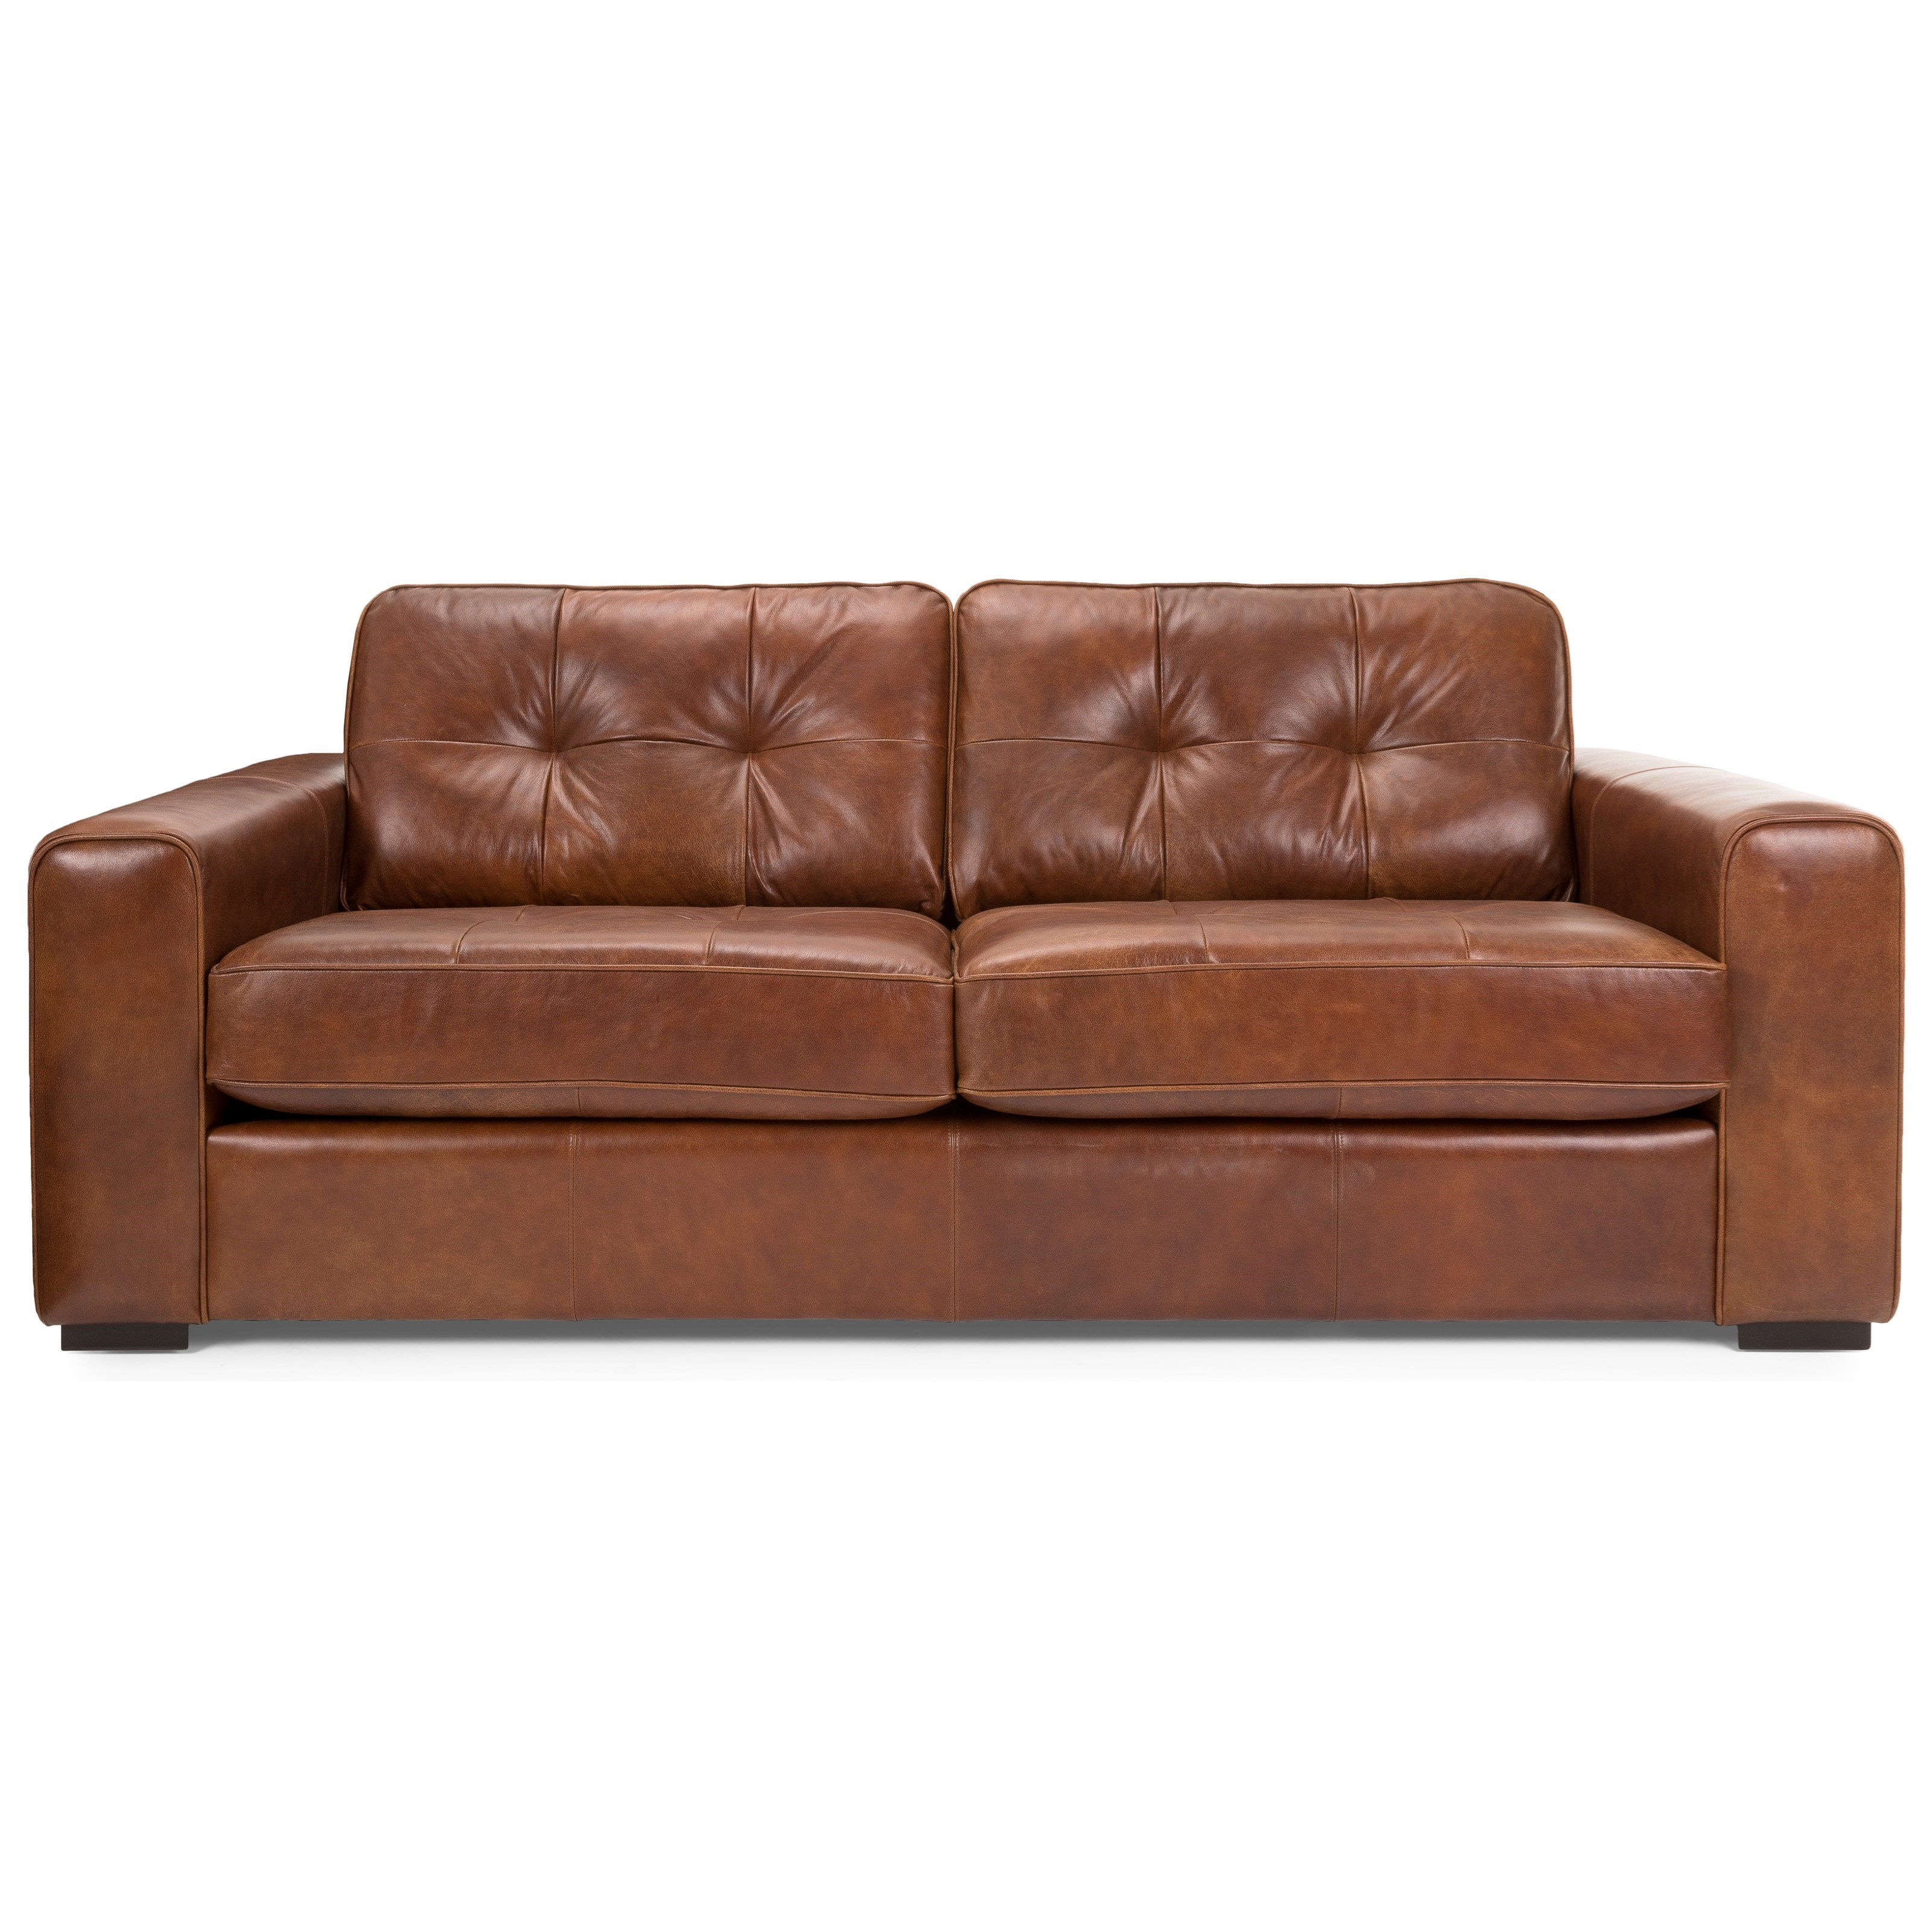 3990 Sofa by Taelor Designs at Bennett's Furniture and Mattresses